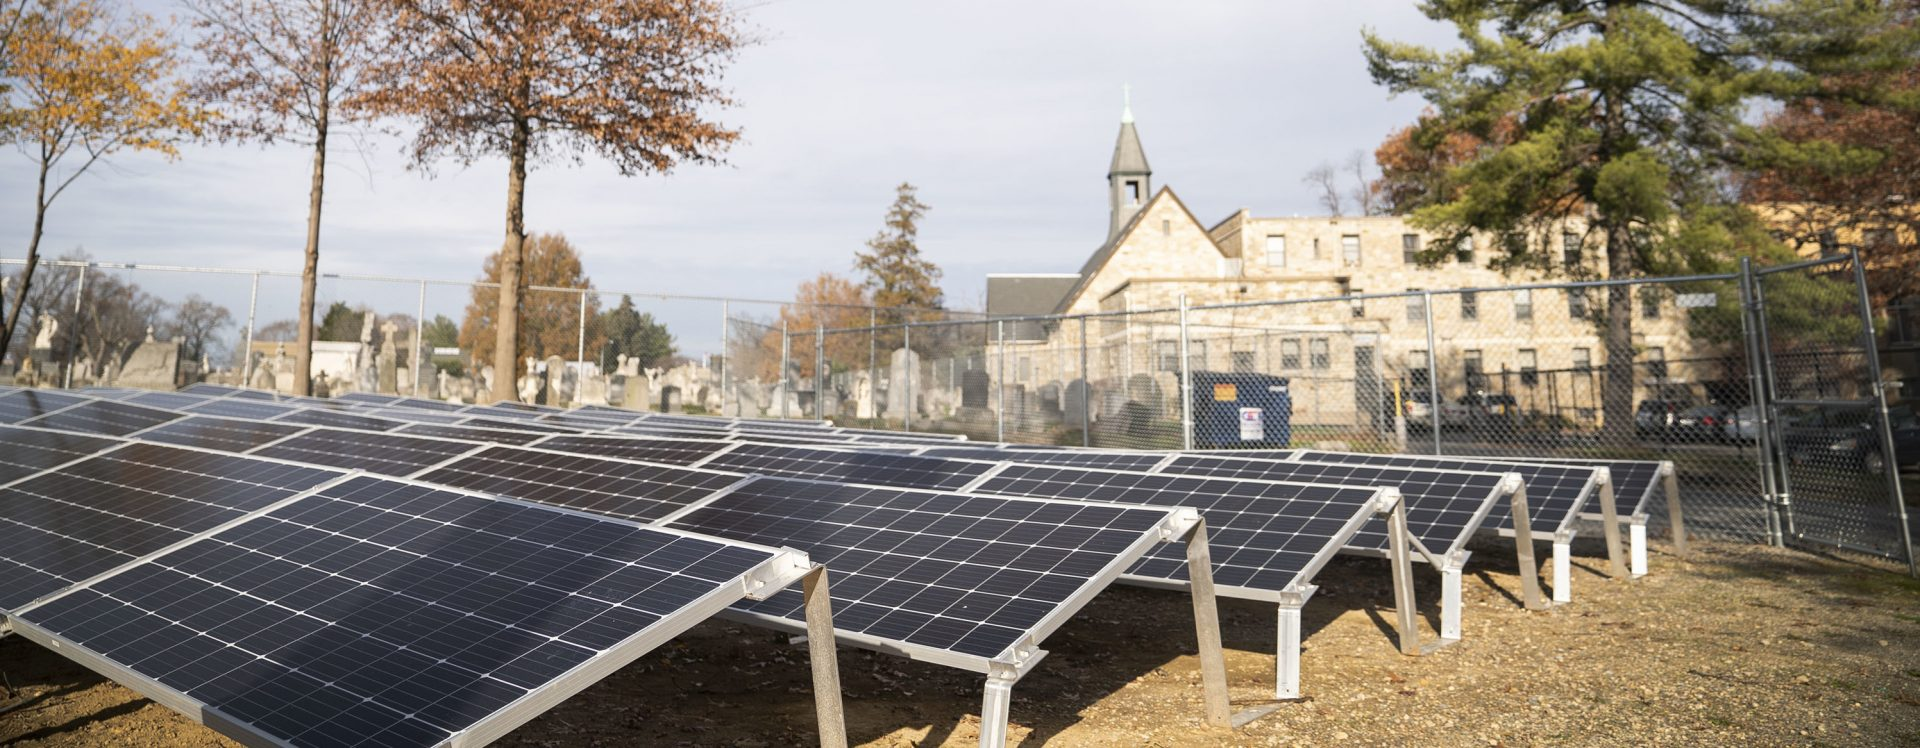 The Monastery of Our Lady of Mt. Carmel in Washington, D.C. is the new host of a 151 kW community solar garden. The panels will provide roughly 50 nearby households with green energy.